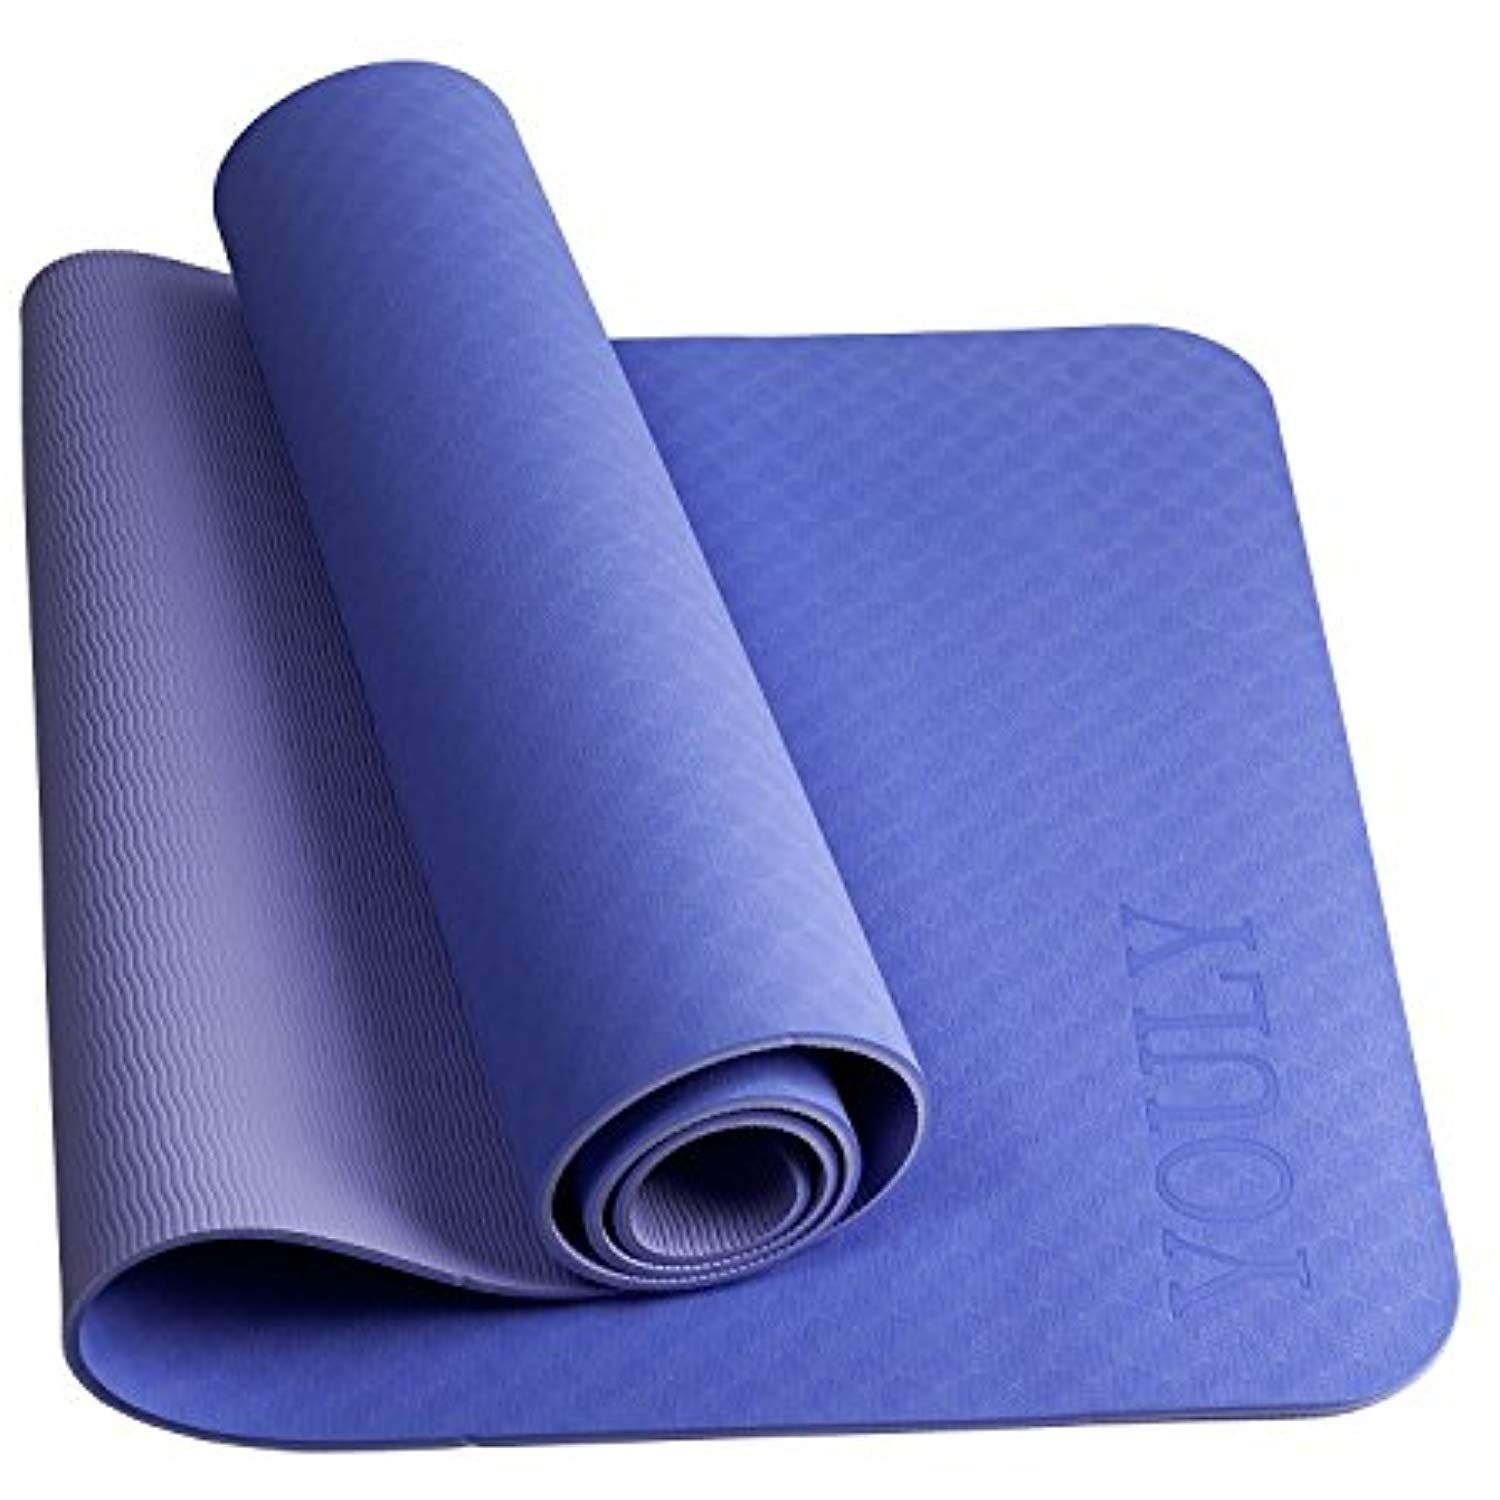 Youly Fitness Mat Yoga Mat Pilates Mats Non Slip High Density Tpe Eco Friendly Stretching Cardio Workout Mats For Mat Exercises Home Gym Flooring Gym Flooring